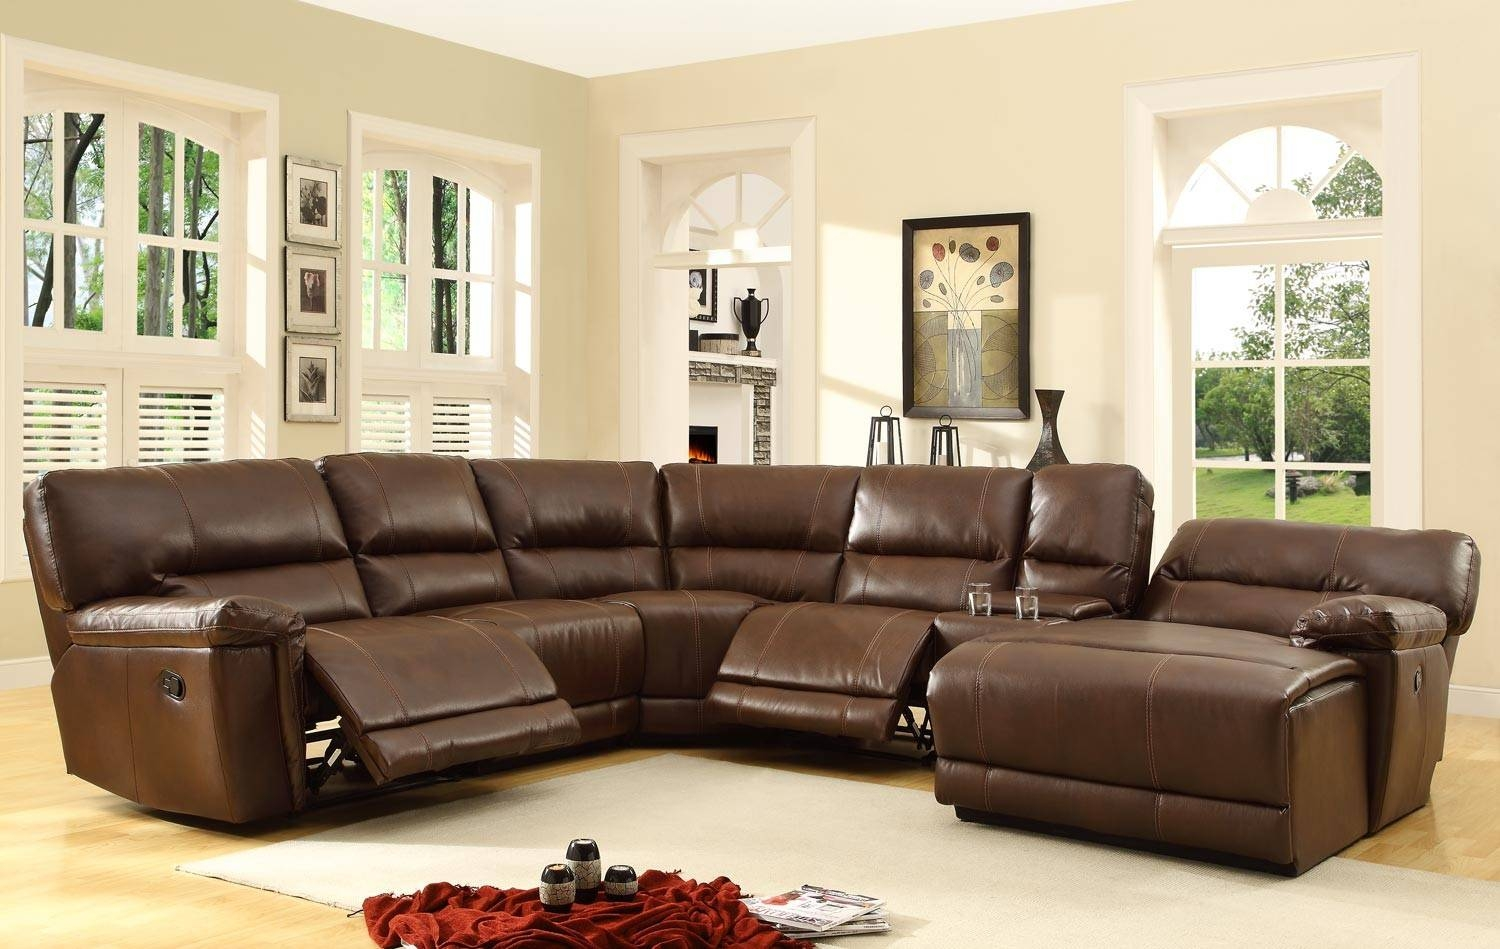 Sofas Center : Leather Sectional Sofa With Recliner He U9606 intended for Sectional Sofa Recliners (Image 26 of 30)